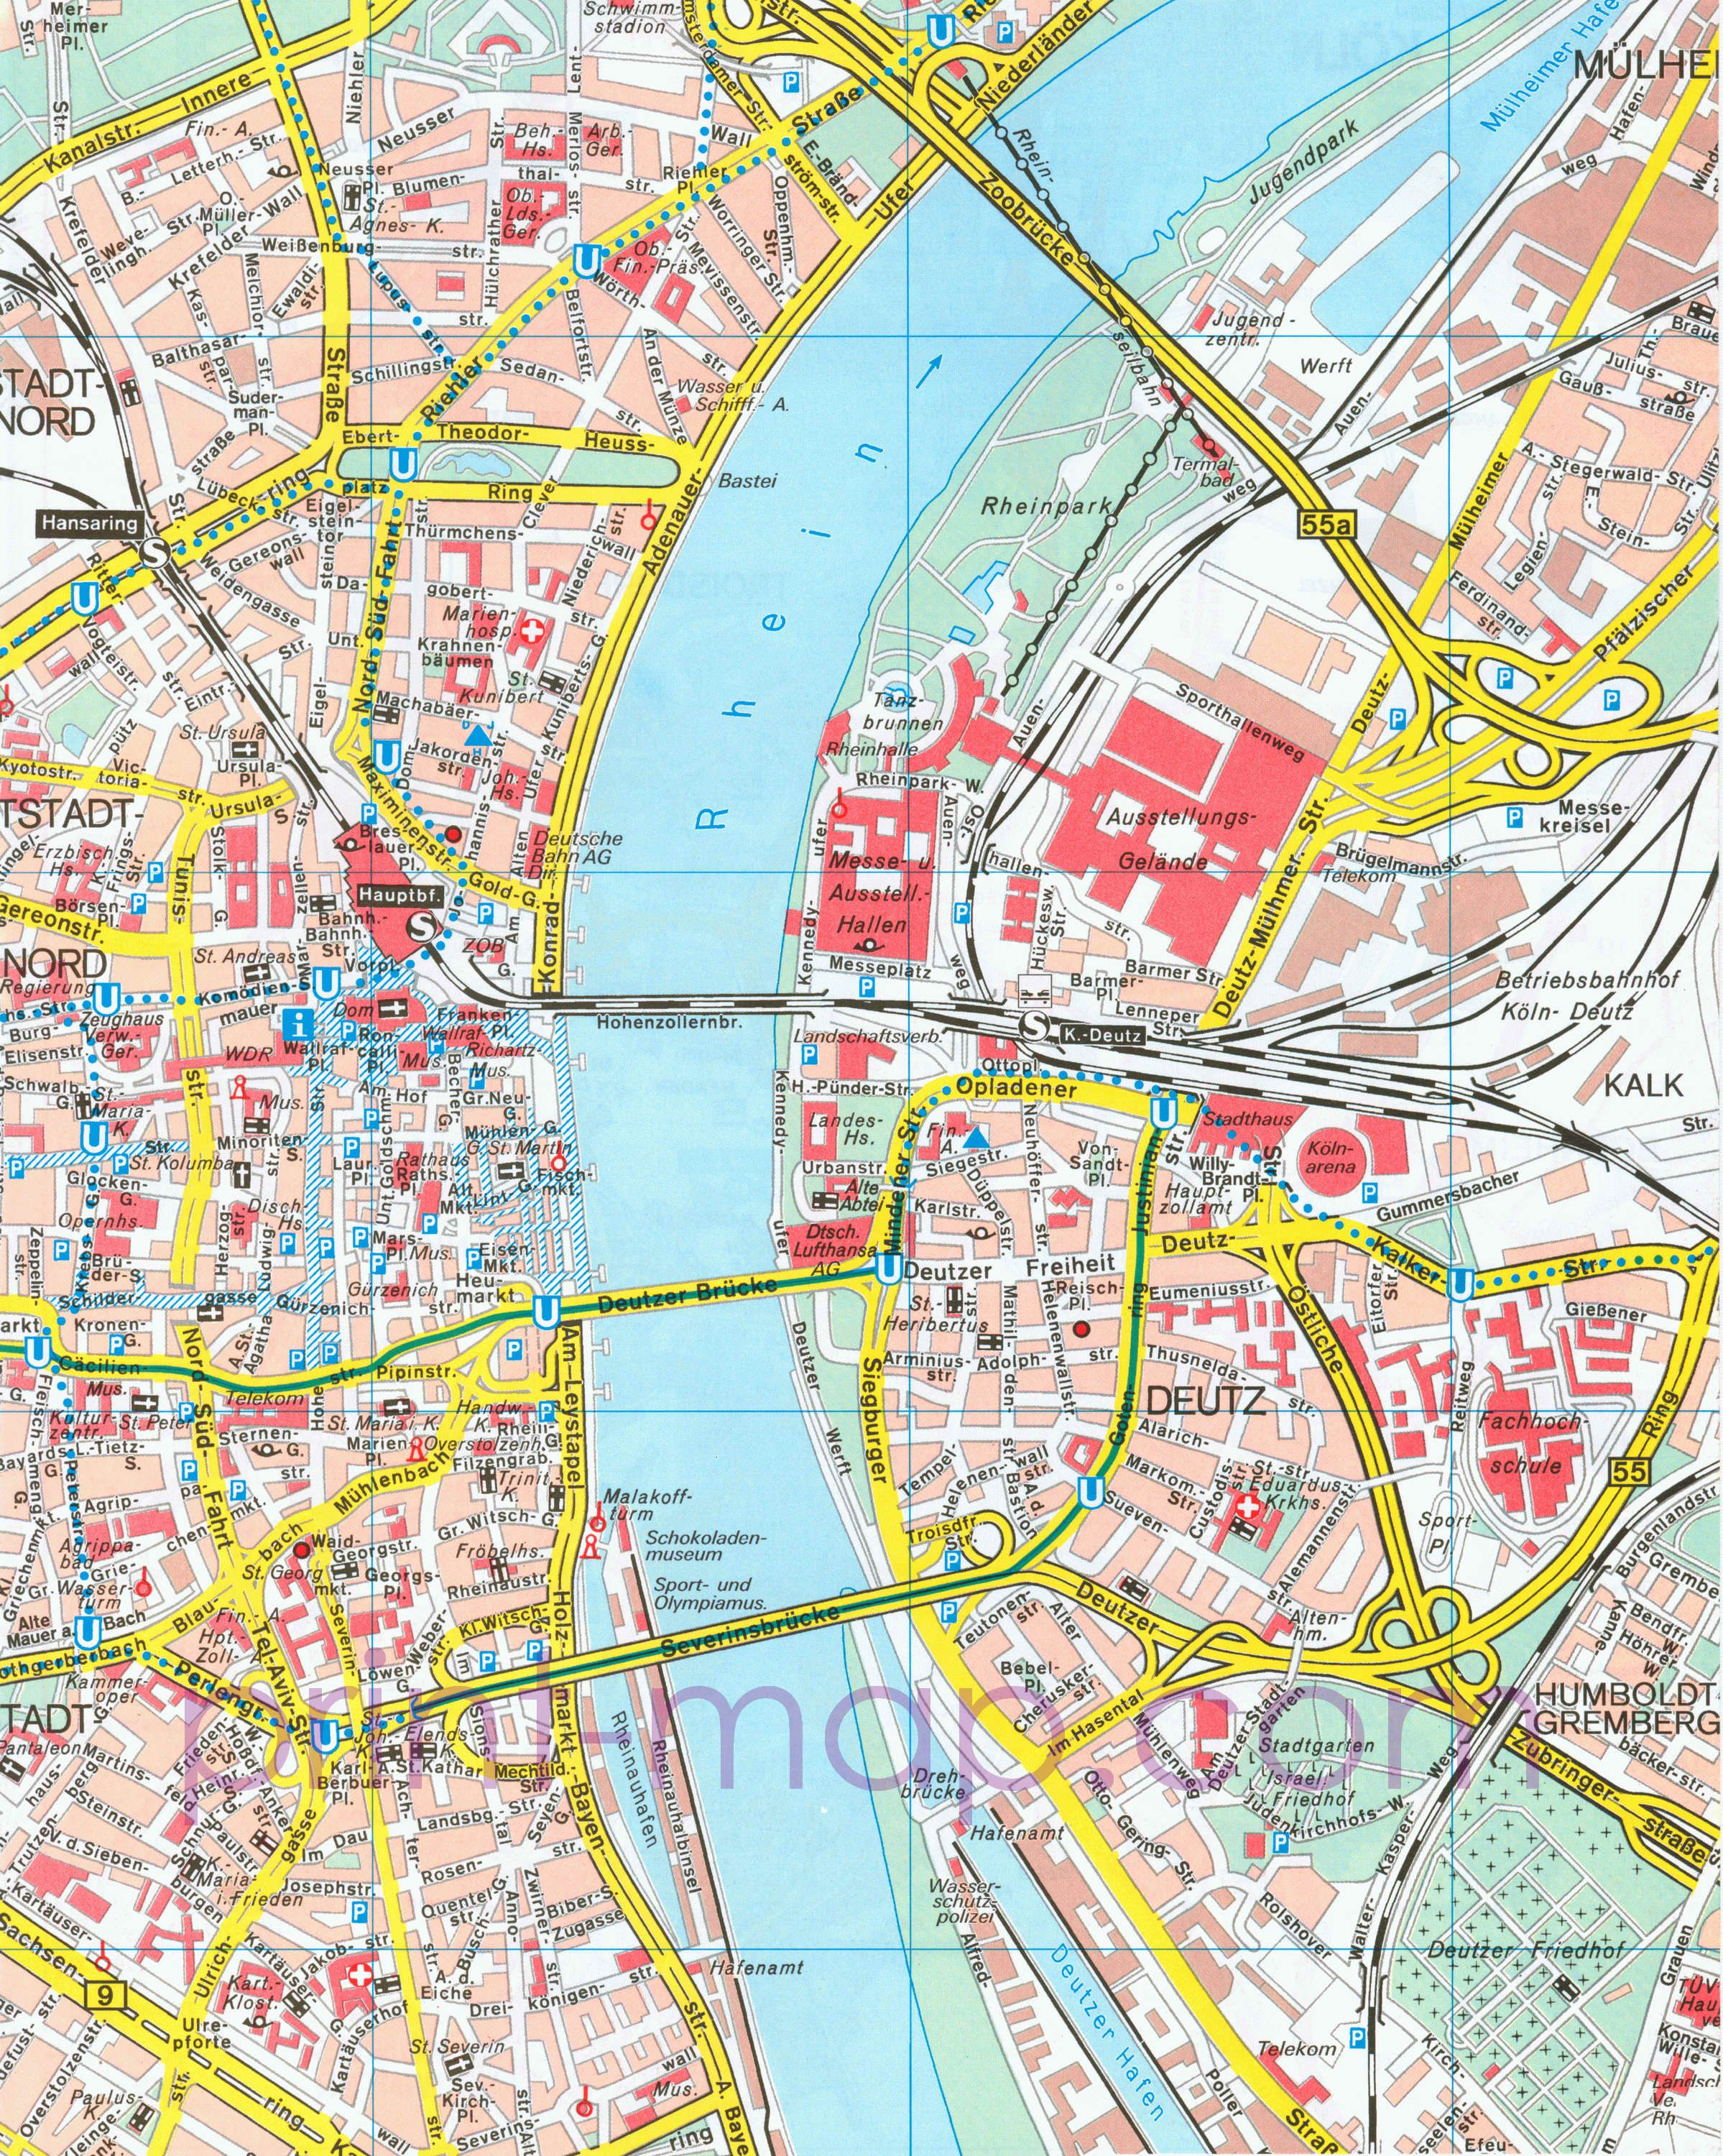 Cologne On Map Of Germany.Pdf Map Of Cologne Germany Maps Maps Maps Any And All Also